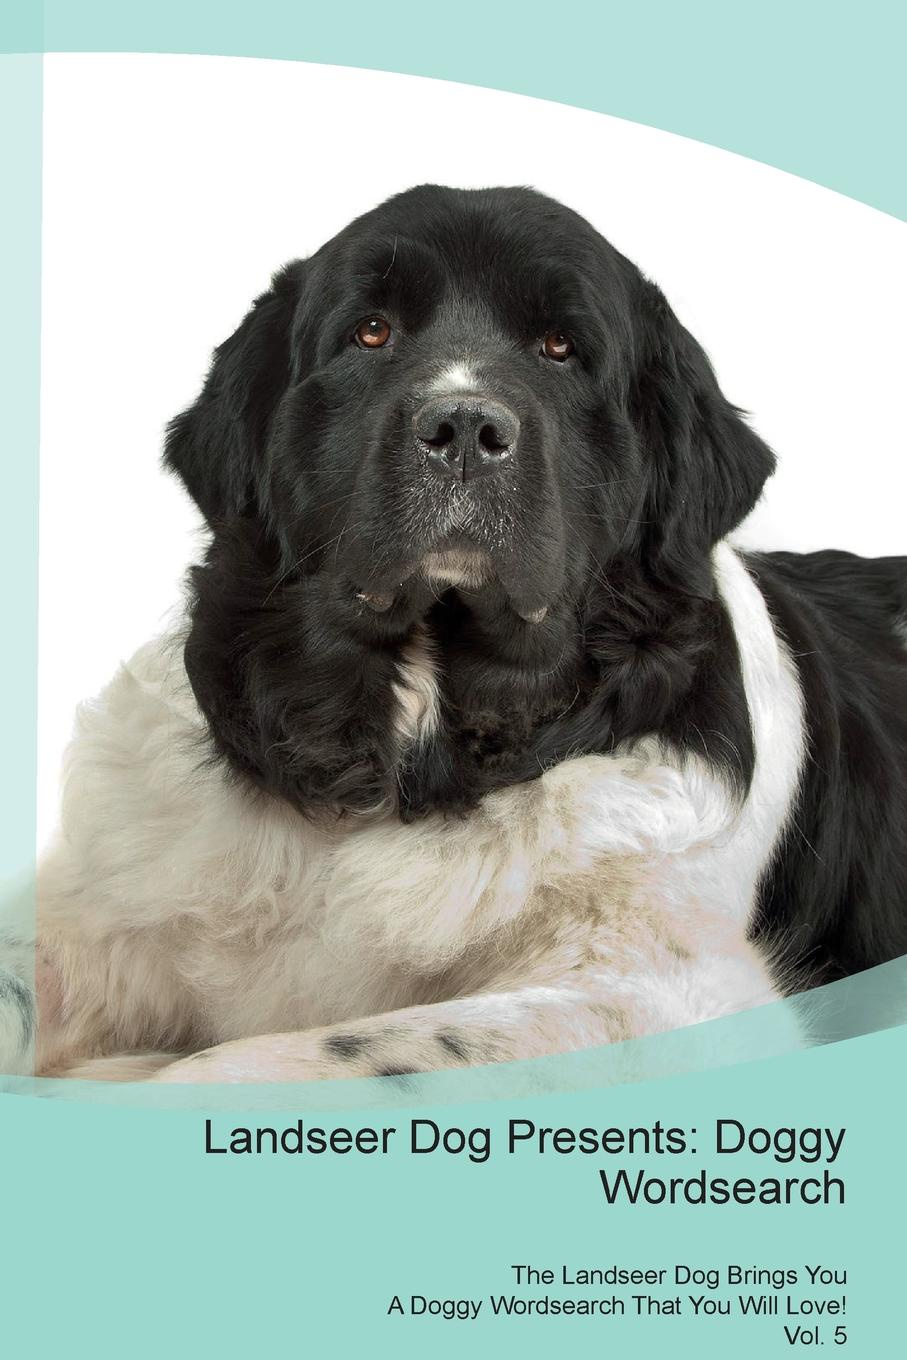 Doggy Puzzles Landseer Dog Presents. Wordsearch The Brings You A That Will Love! Vol. 5